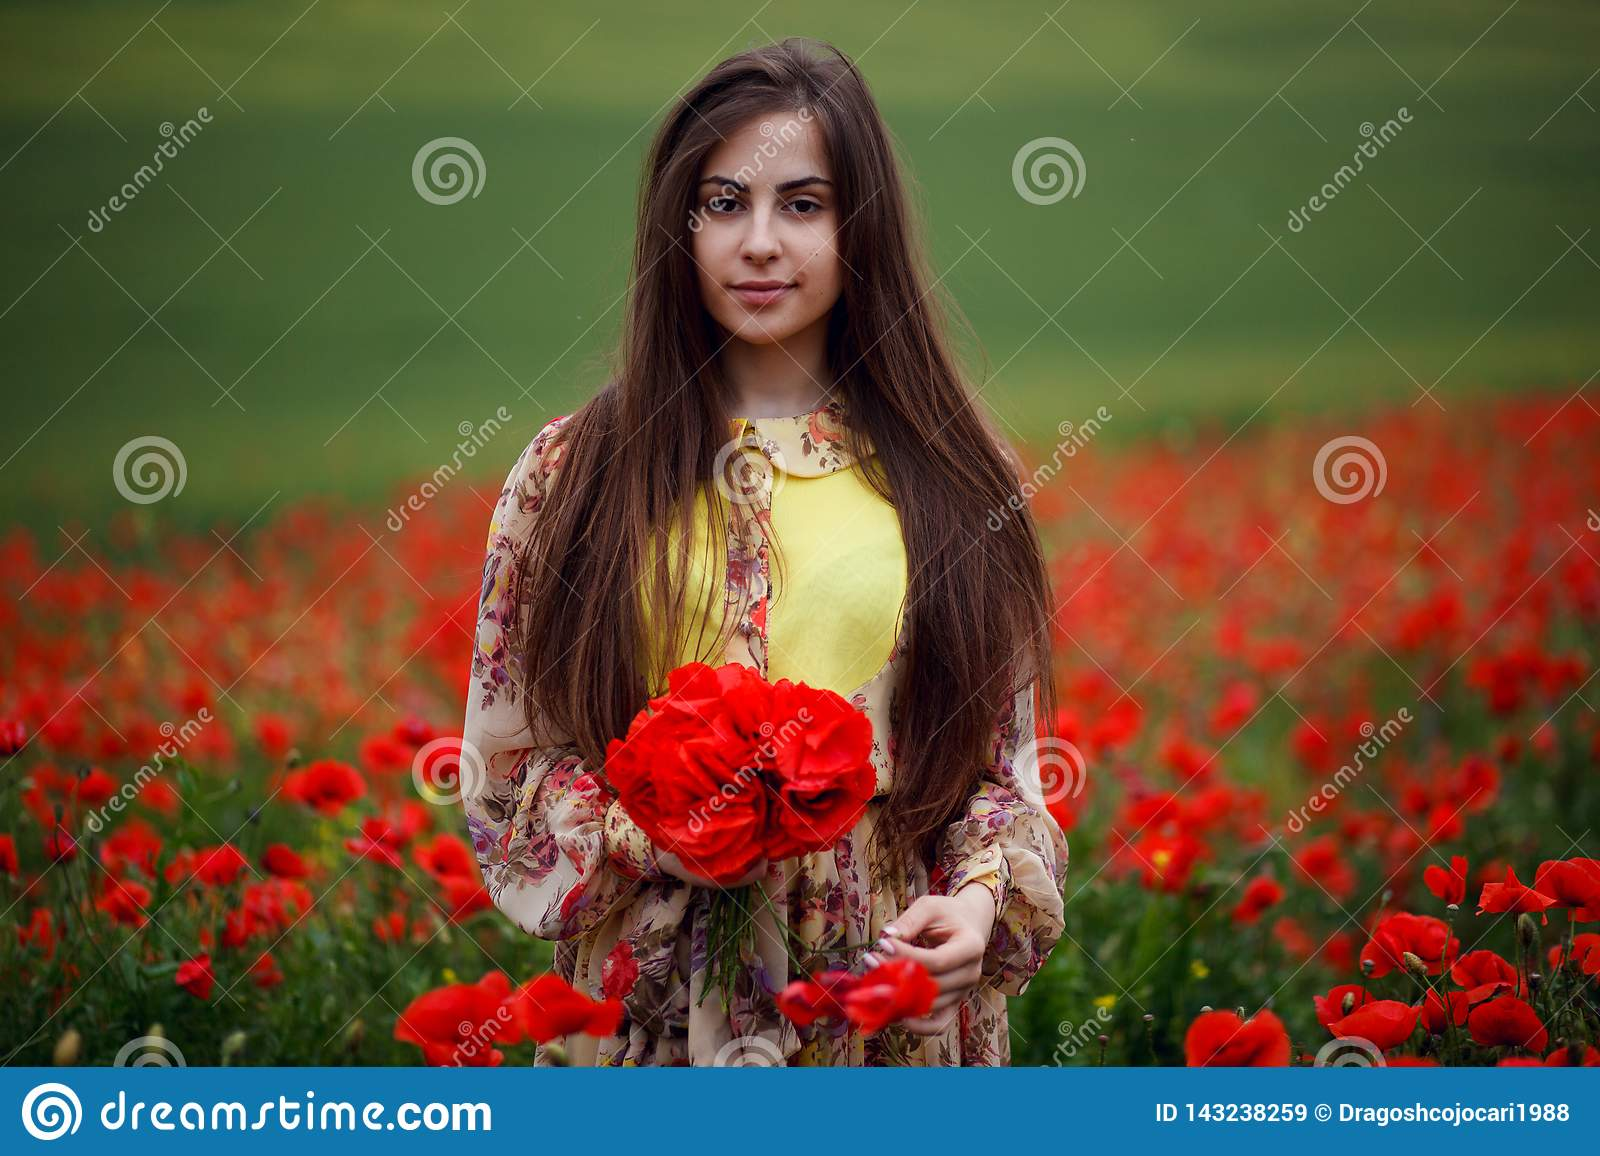 Close up portrait of hair long young woman with flower poppy, holdings in hands a bouquet of a red flowers